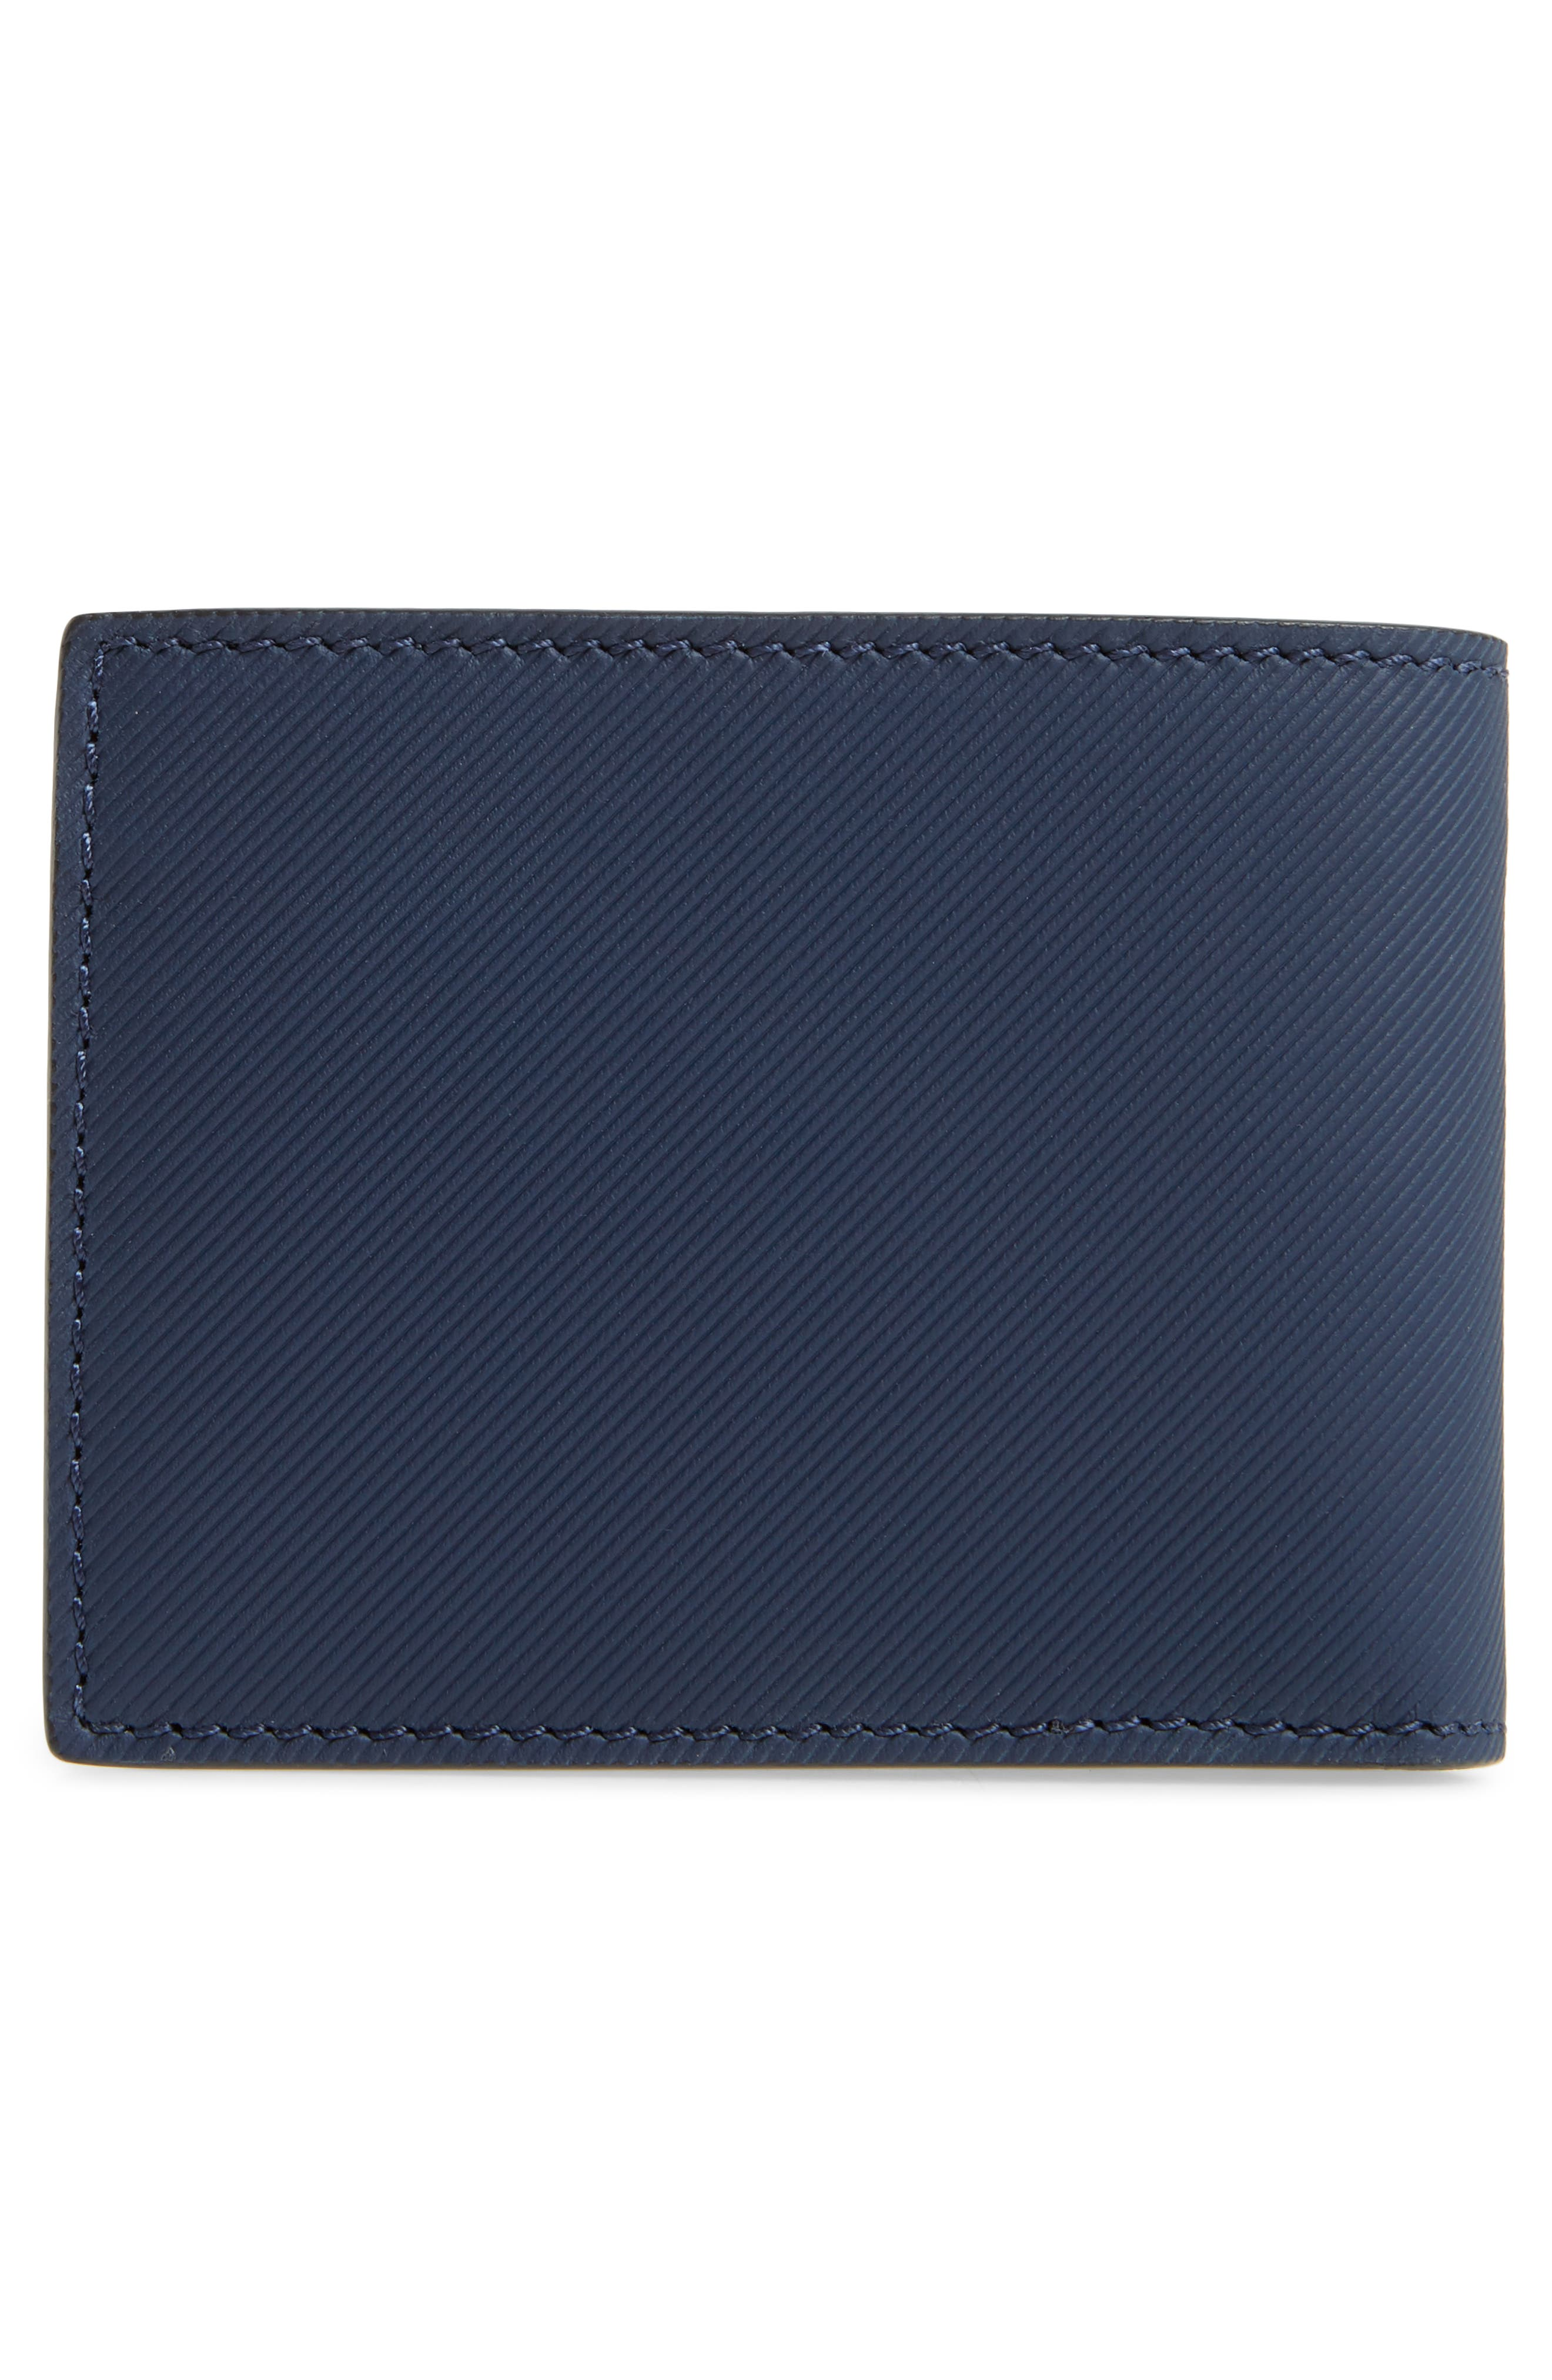 Trench Leather Wallet,                             Alternate thumbnail 3, color,                             Ink Blue